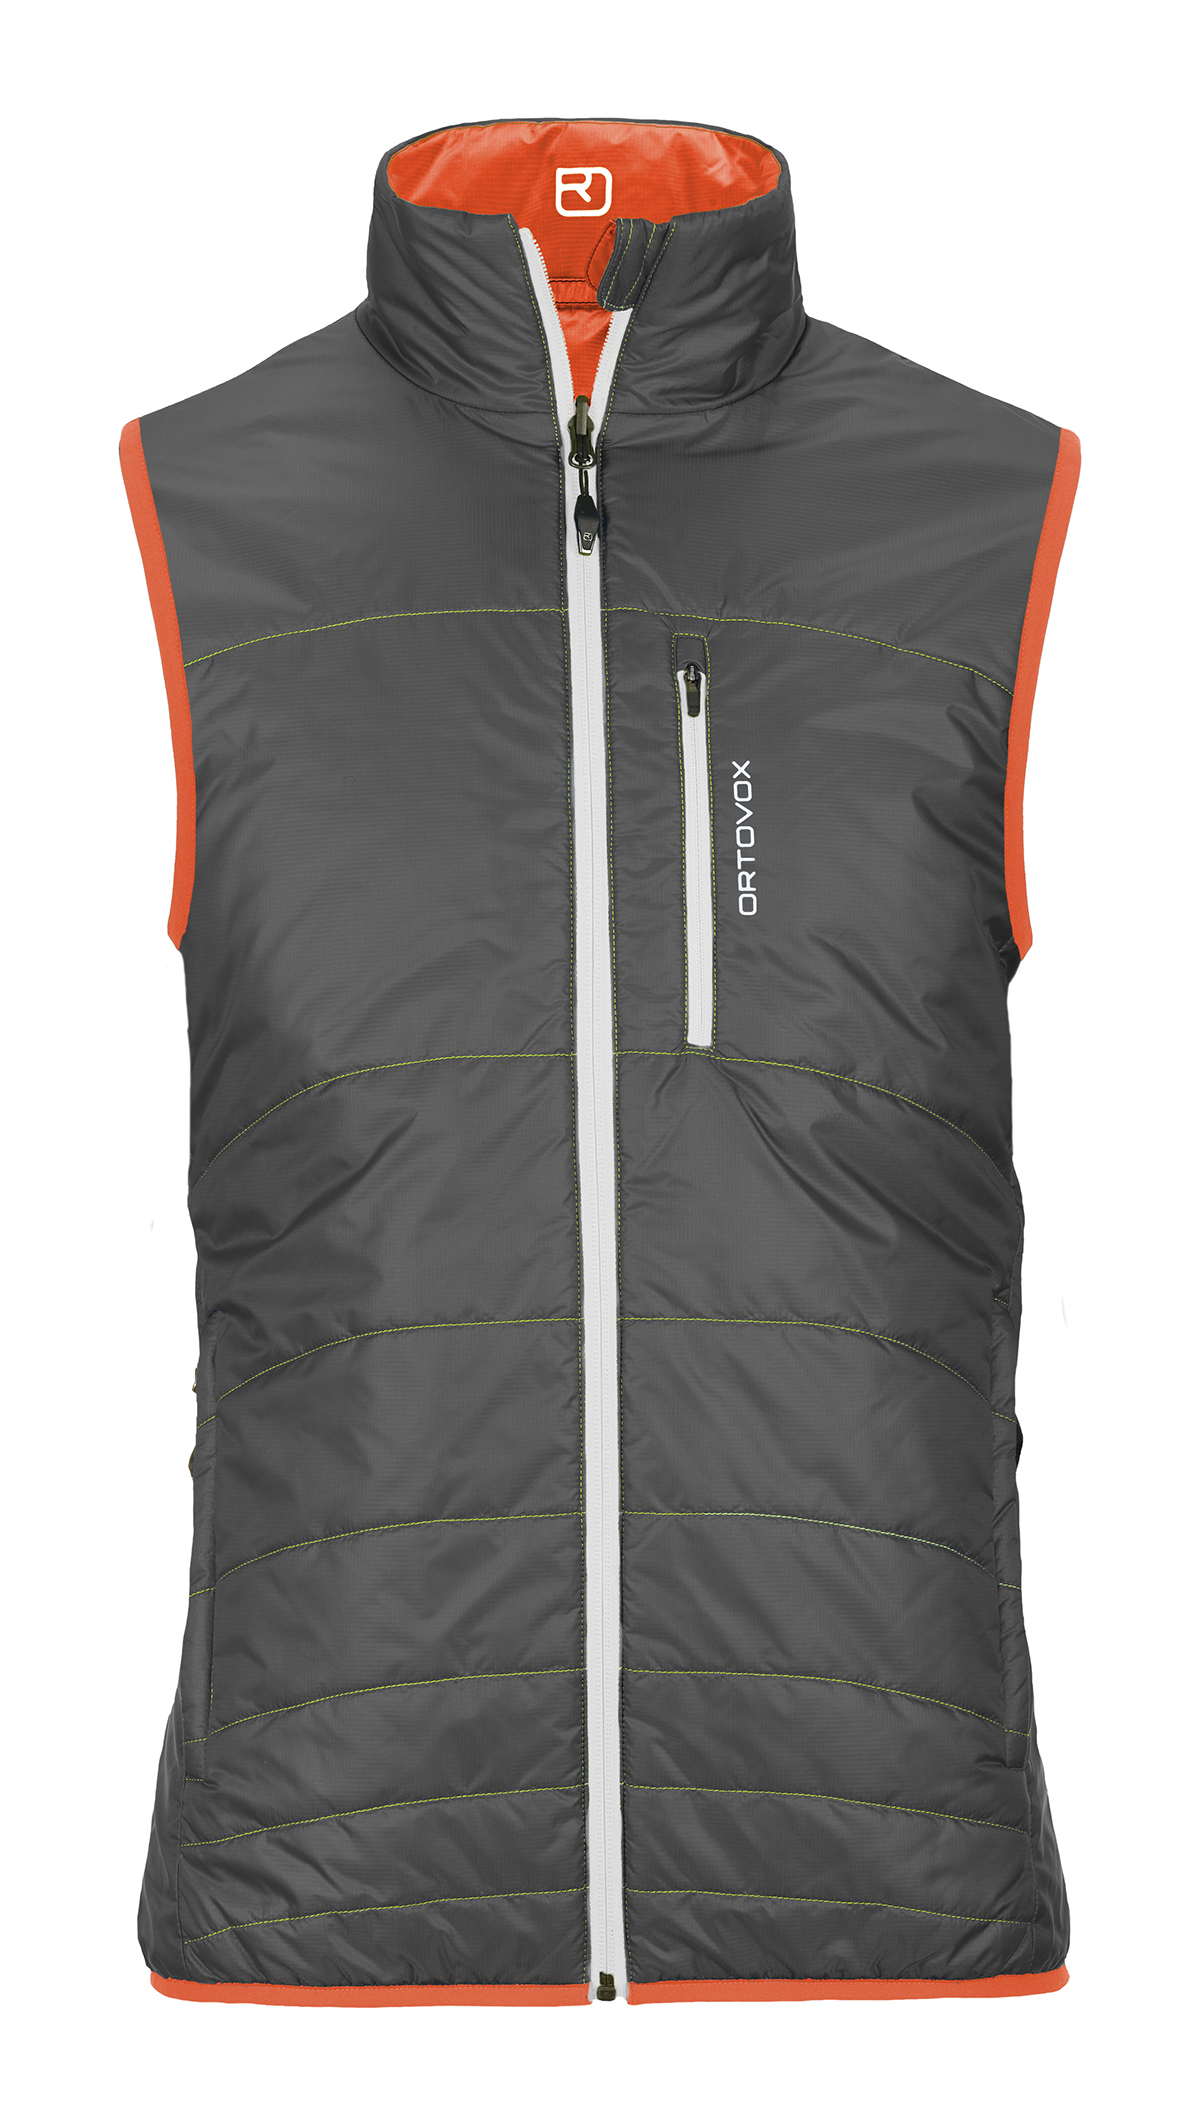 swisswool-light-piz-cartas-vest-m-61031-black-steel-out-midres